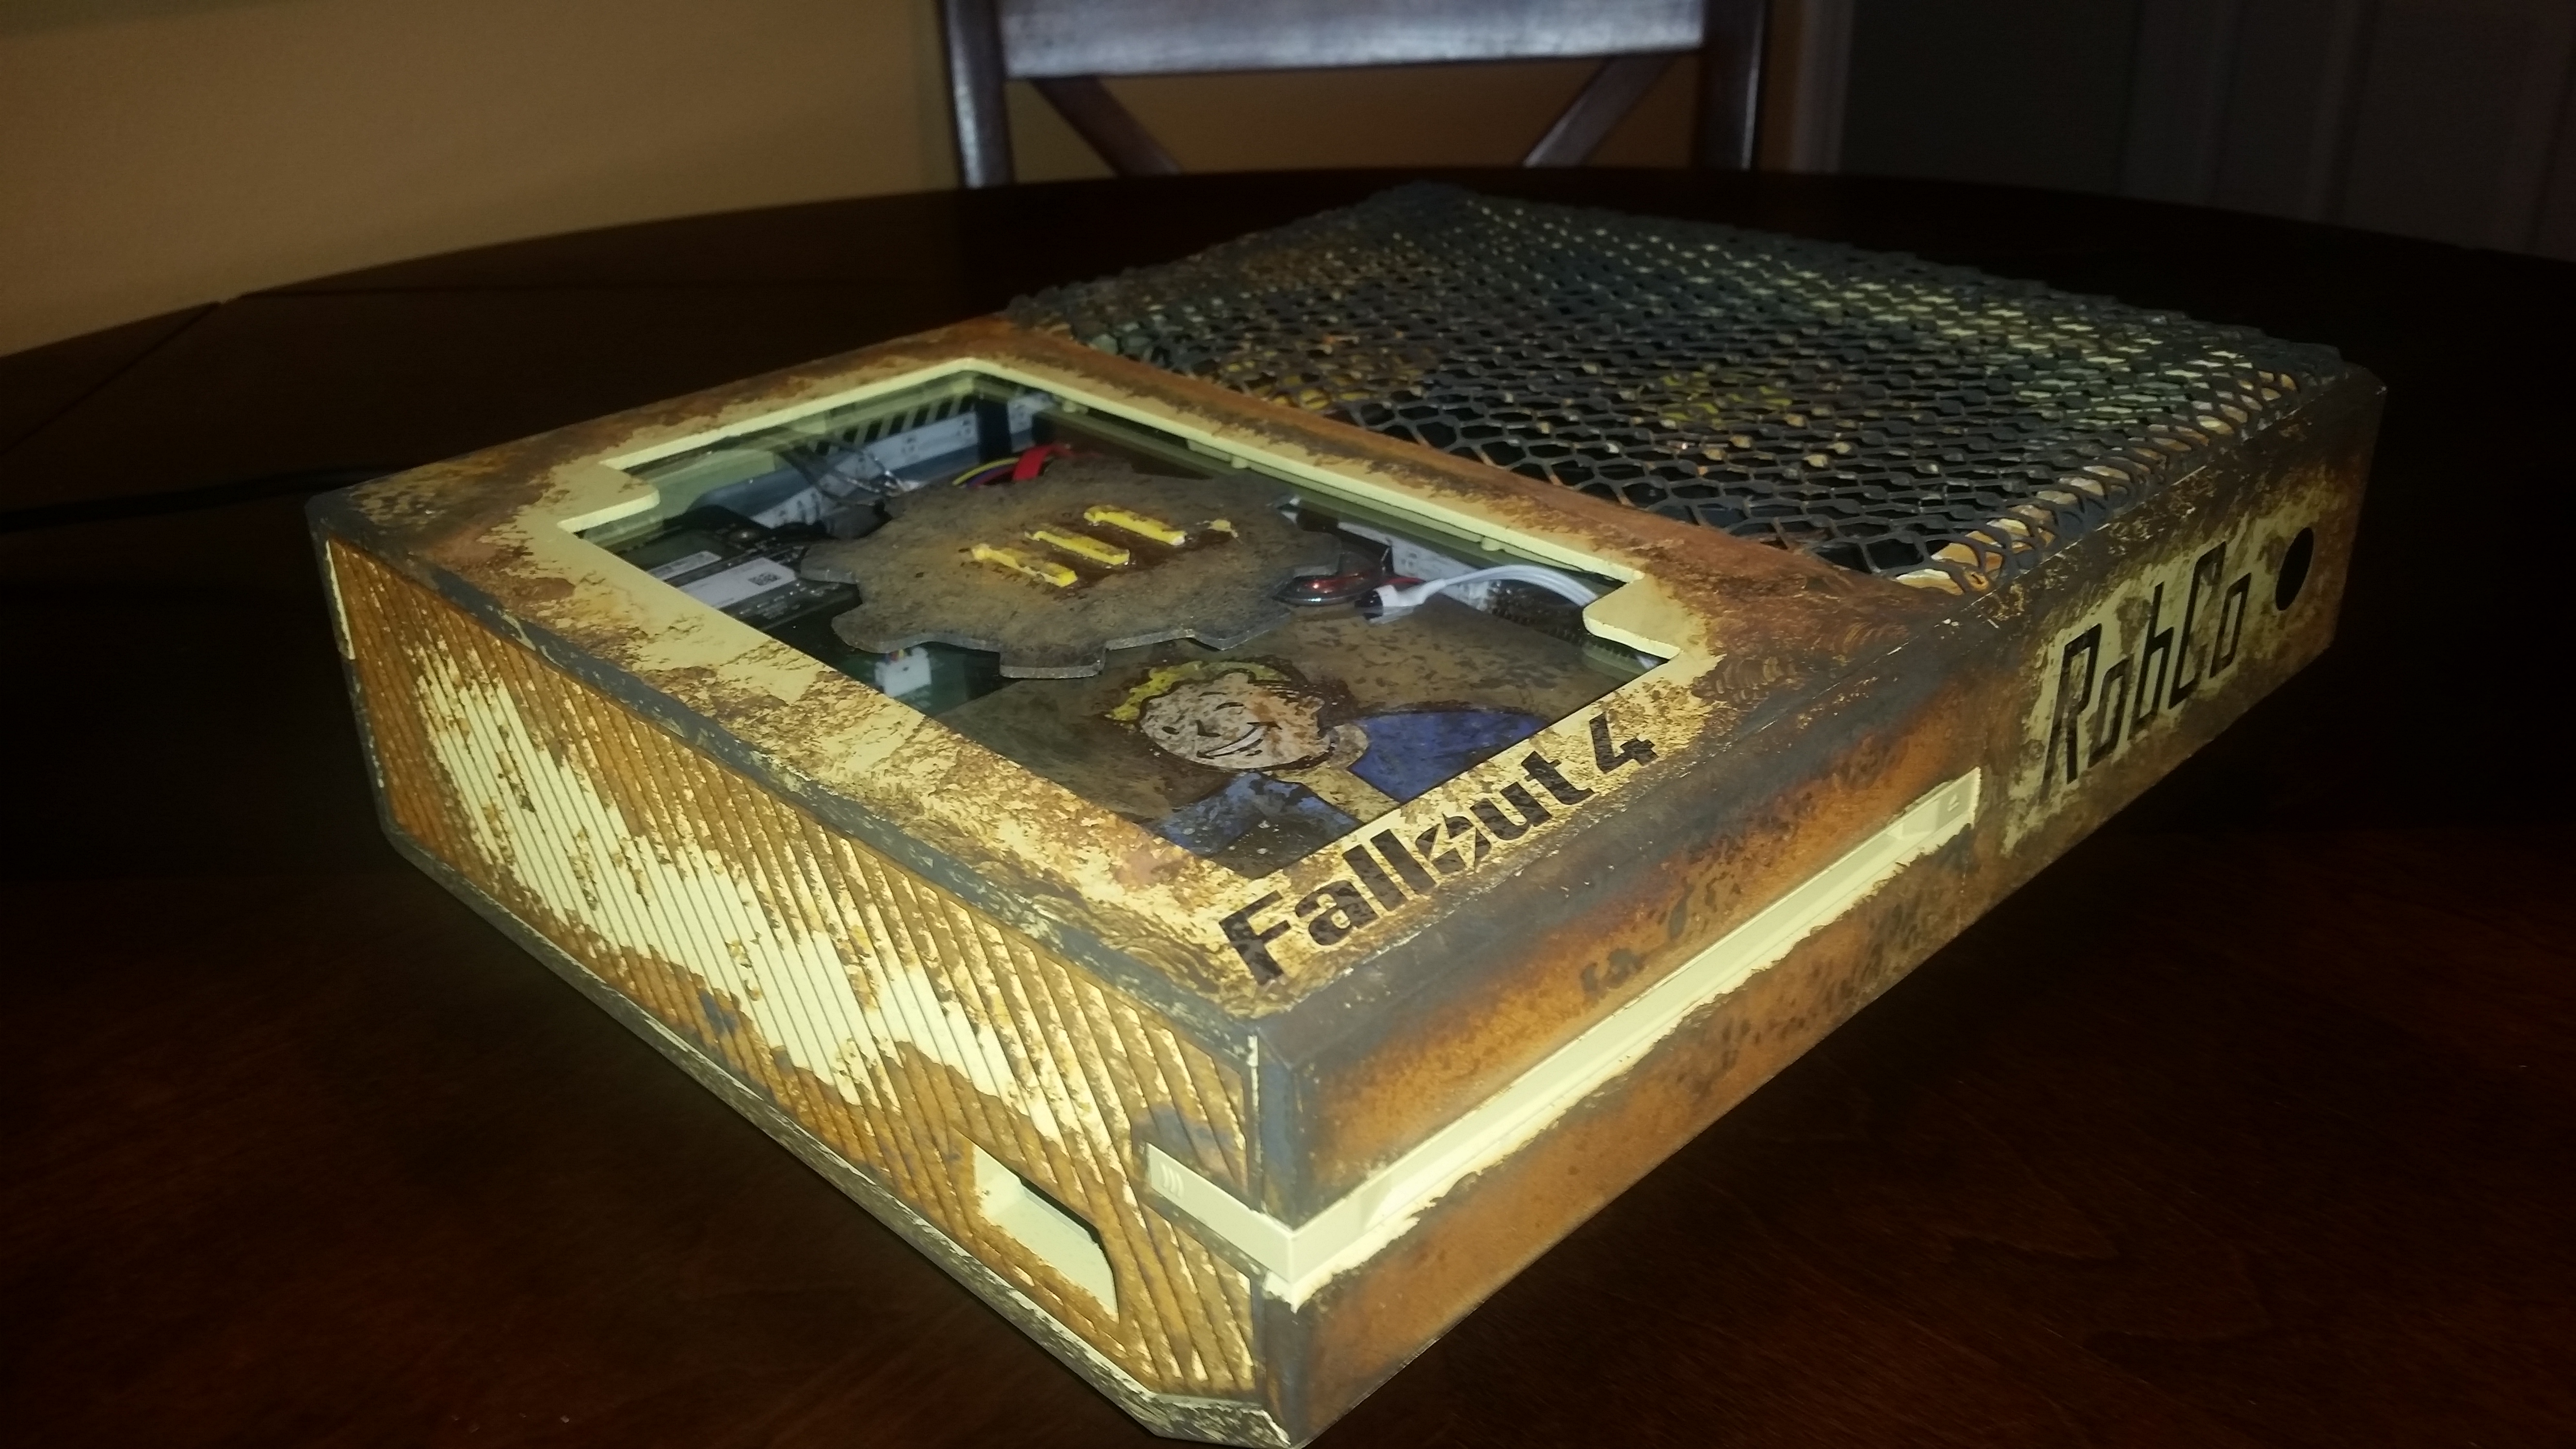 Book Cover Handmade Xbox One : Fallout custom modded xbox one looks stellar